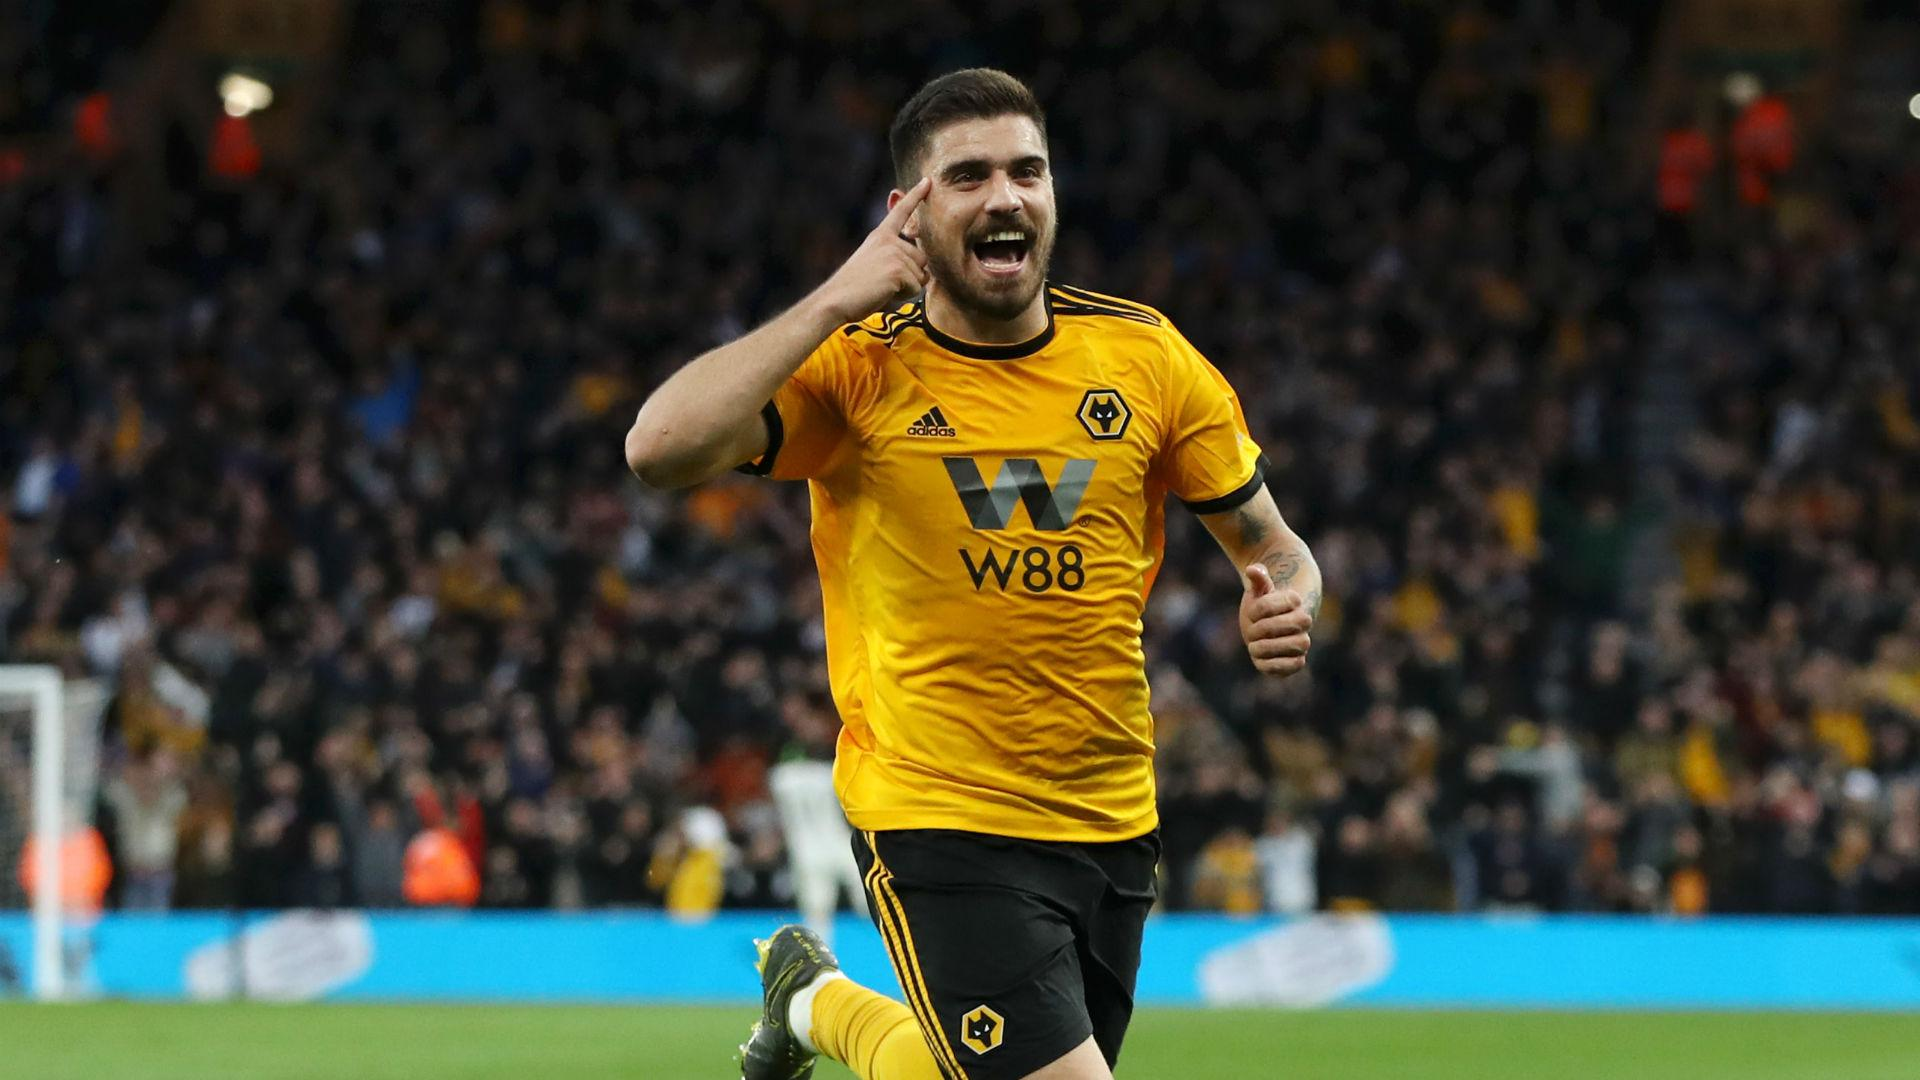 Wolves 3 Arsenal 1: Stunning First-half Display Hurts